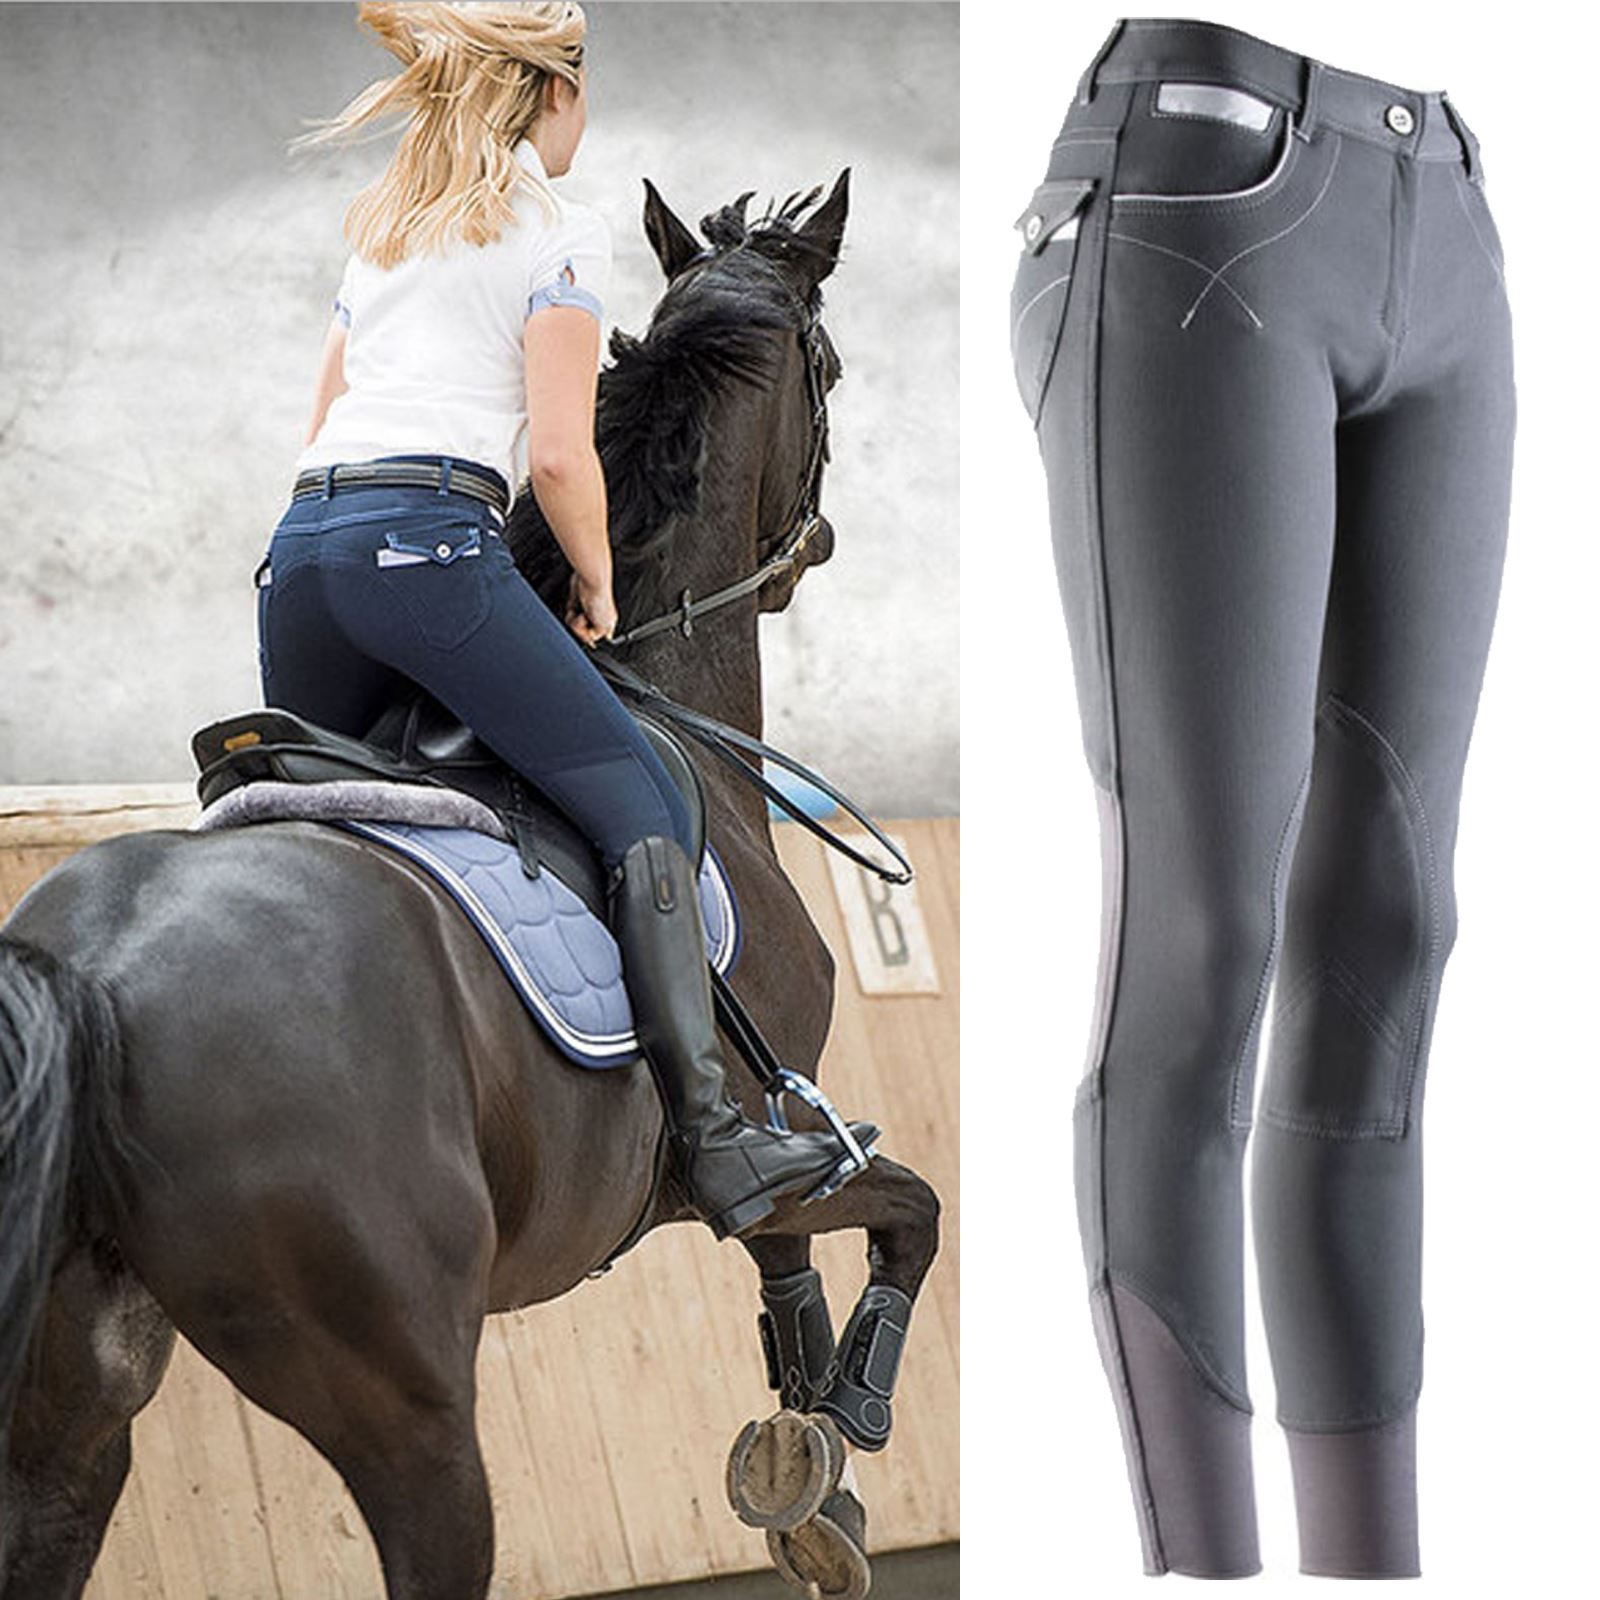 Equi Theme Lea Ladies Classy Contoured Seat Soft Stretch Horse Riding Breeches Ebay